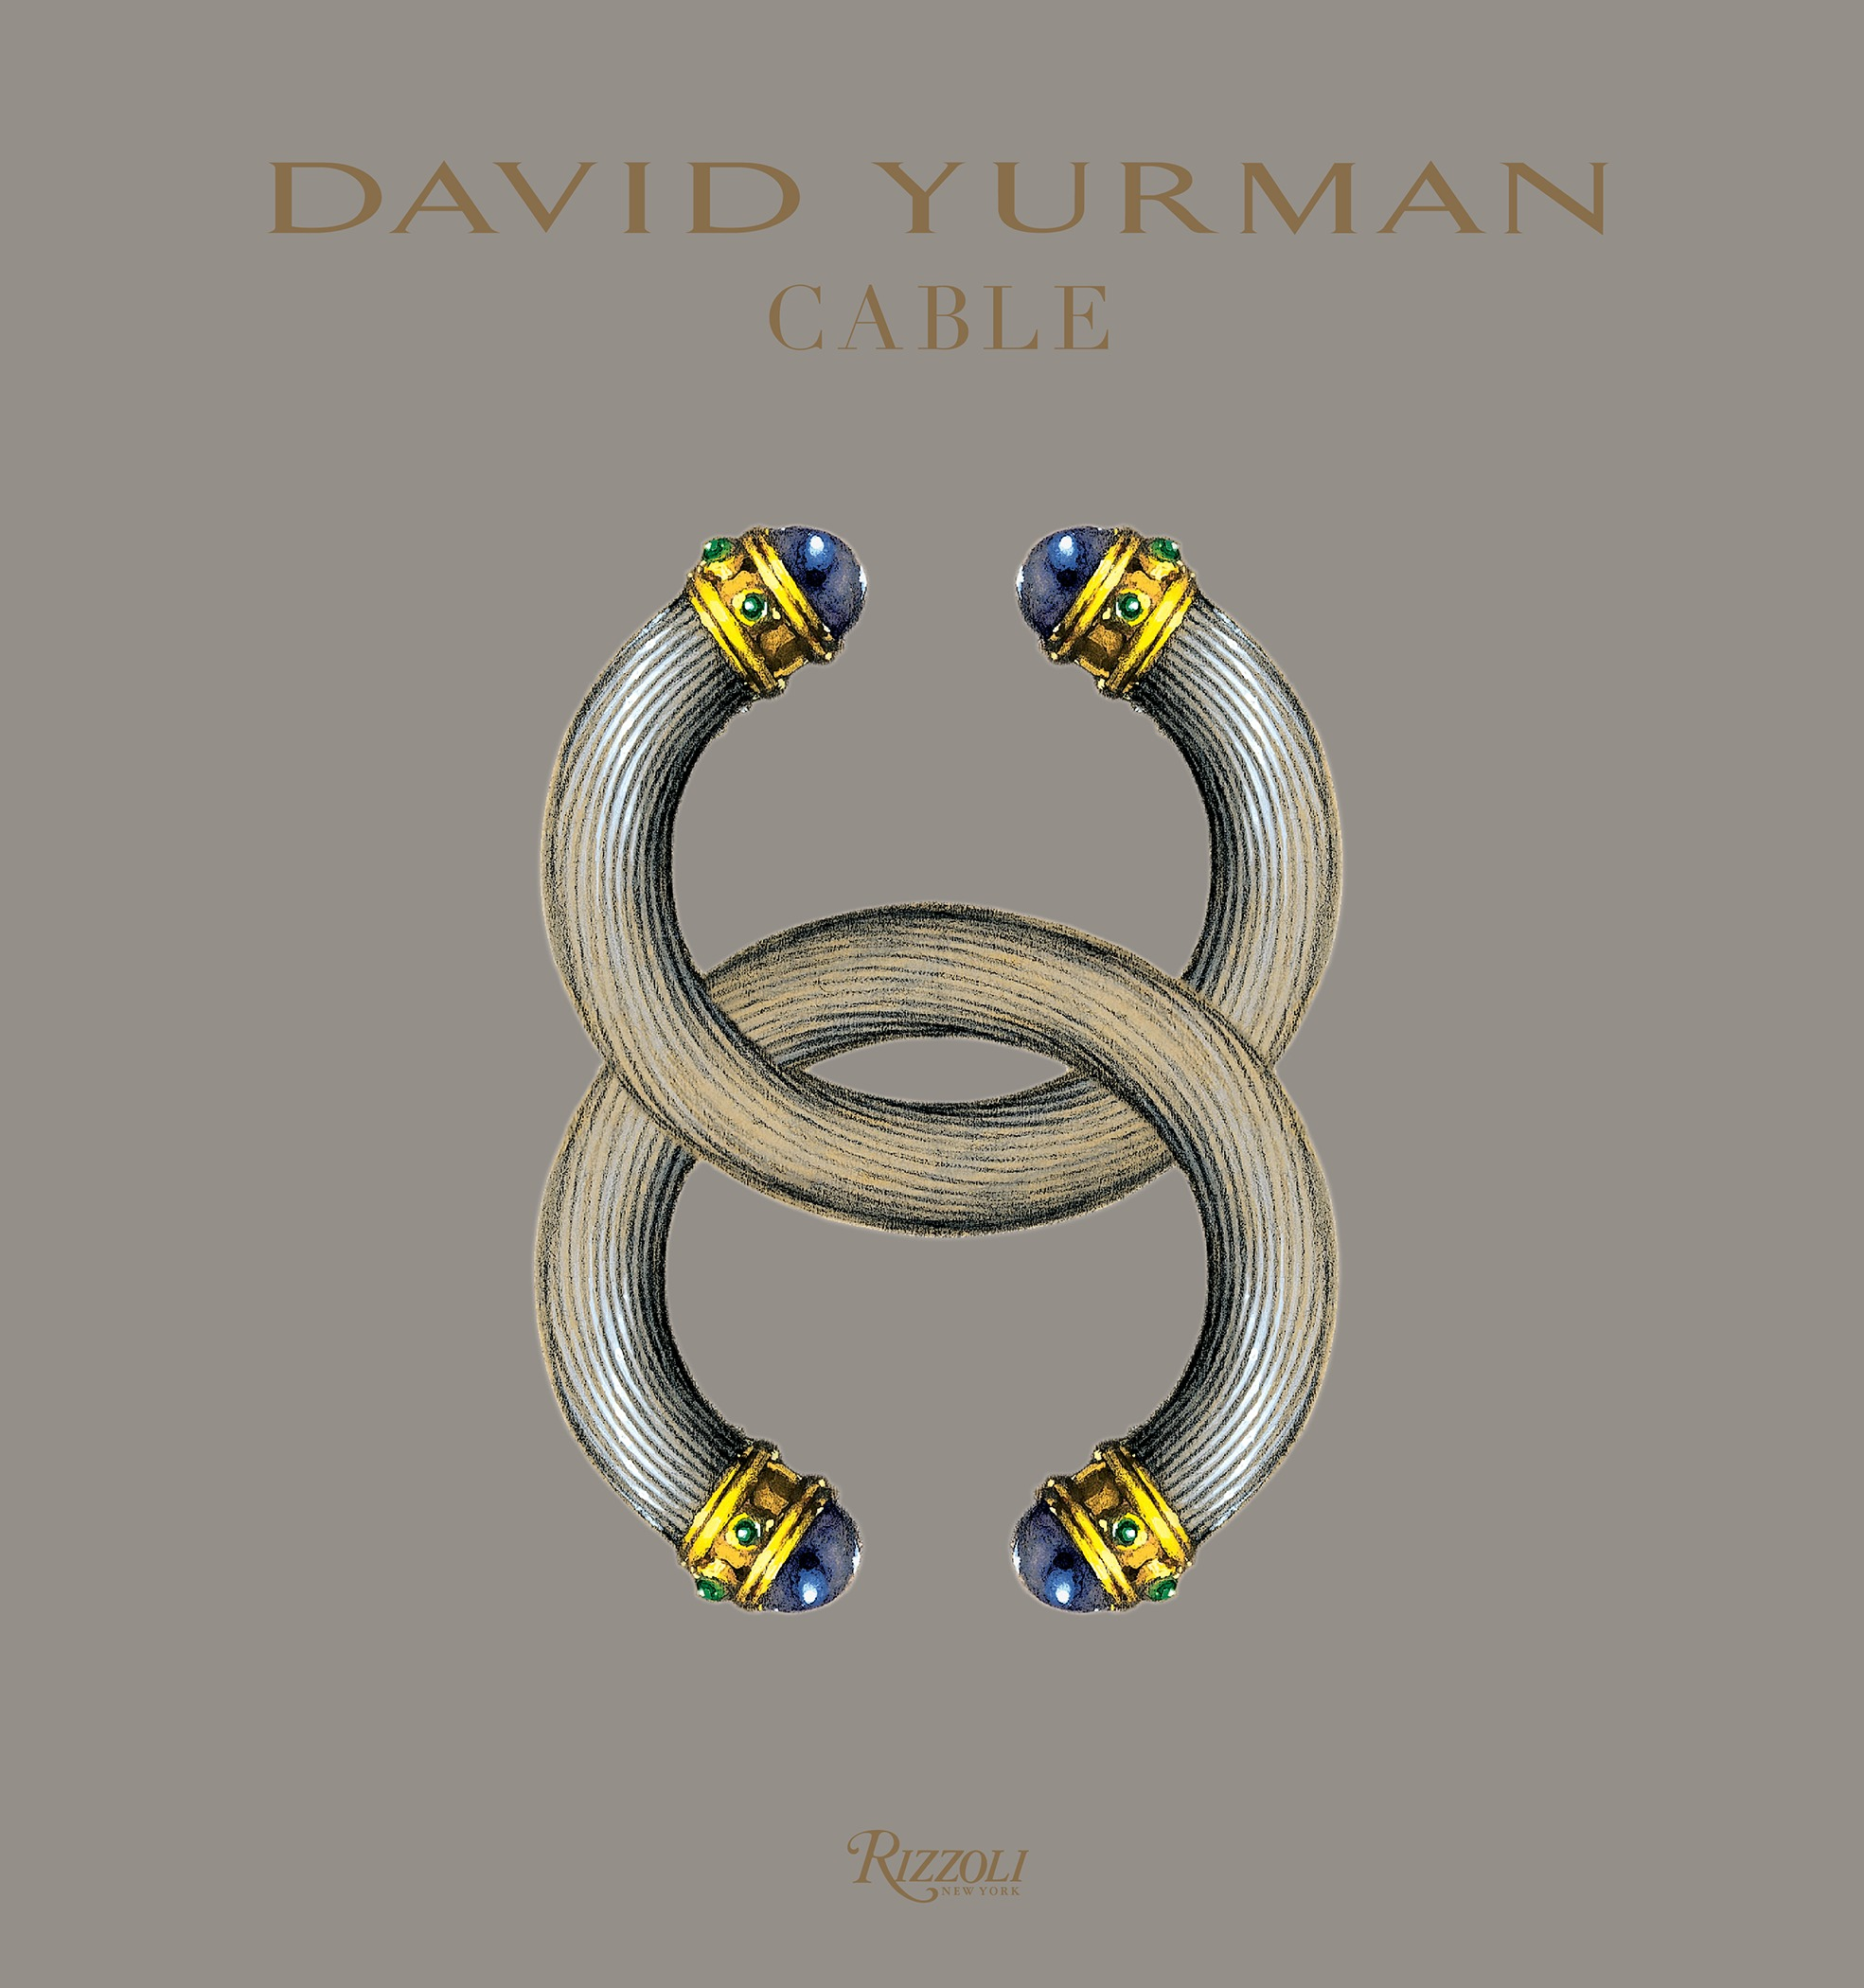 David Yurman : Cable